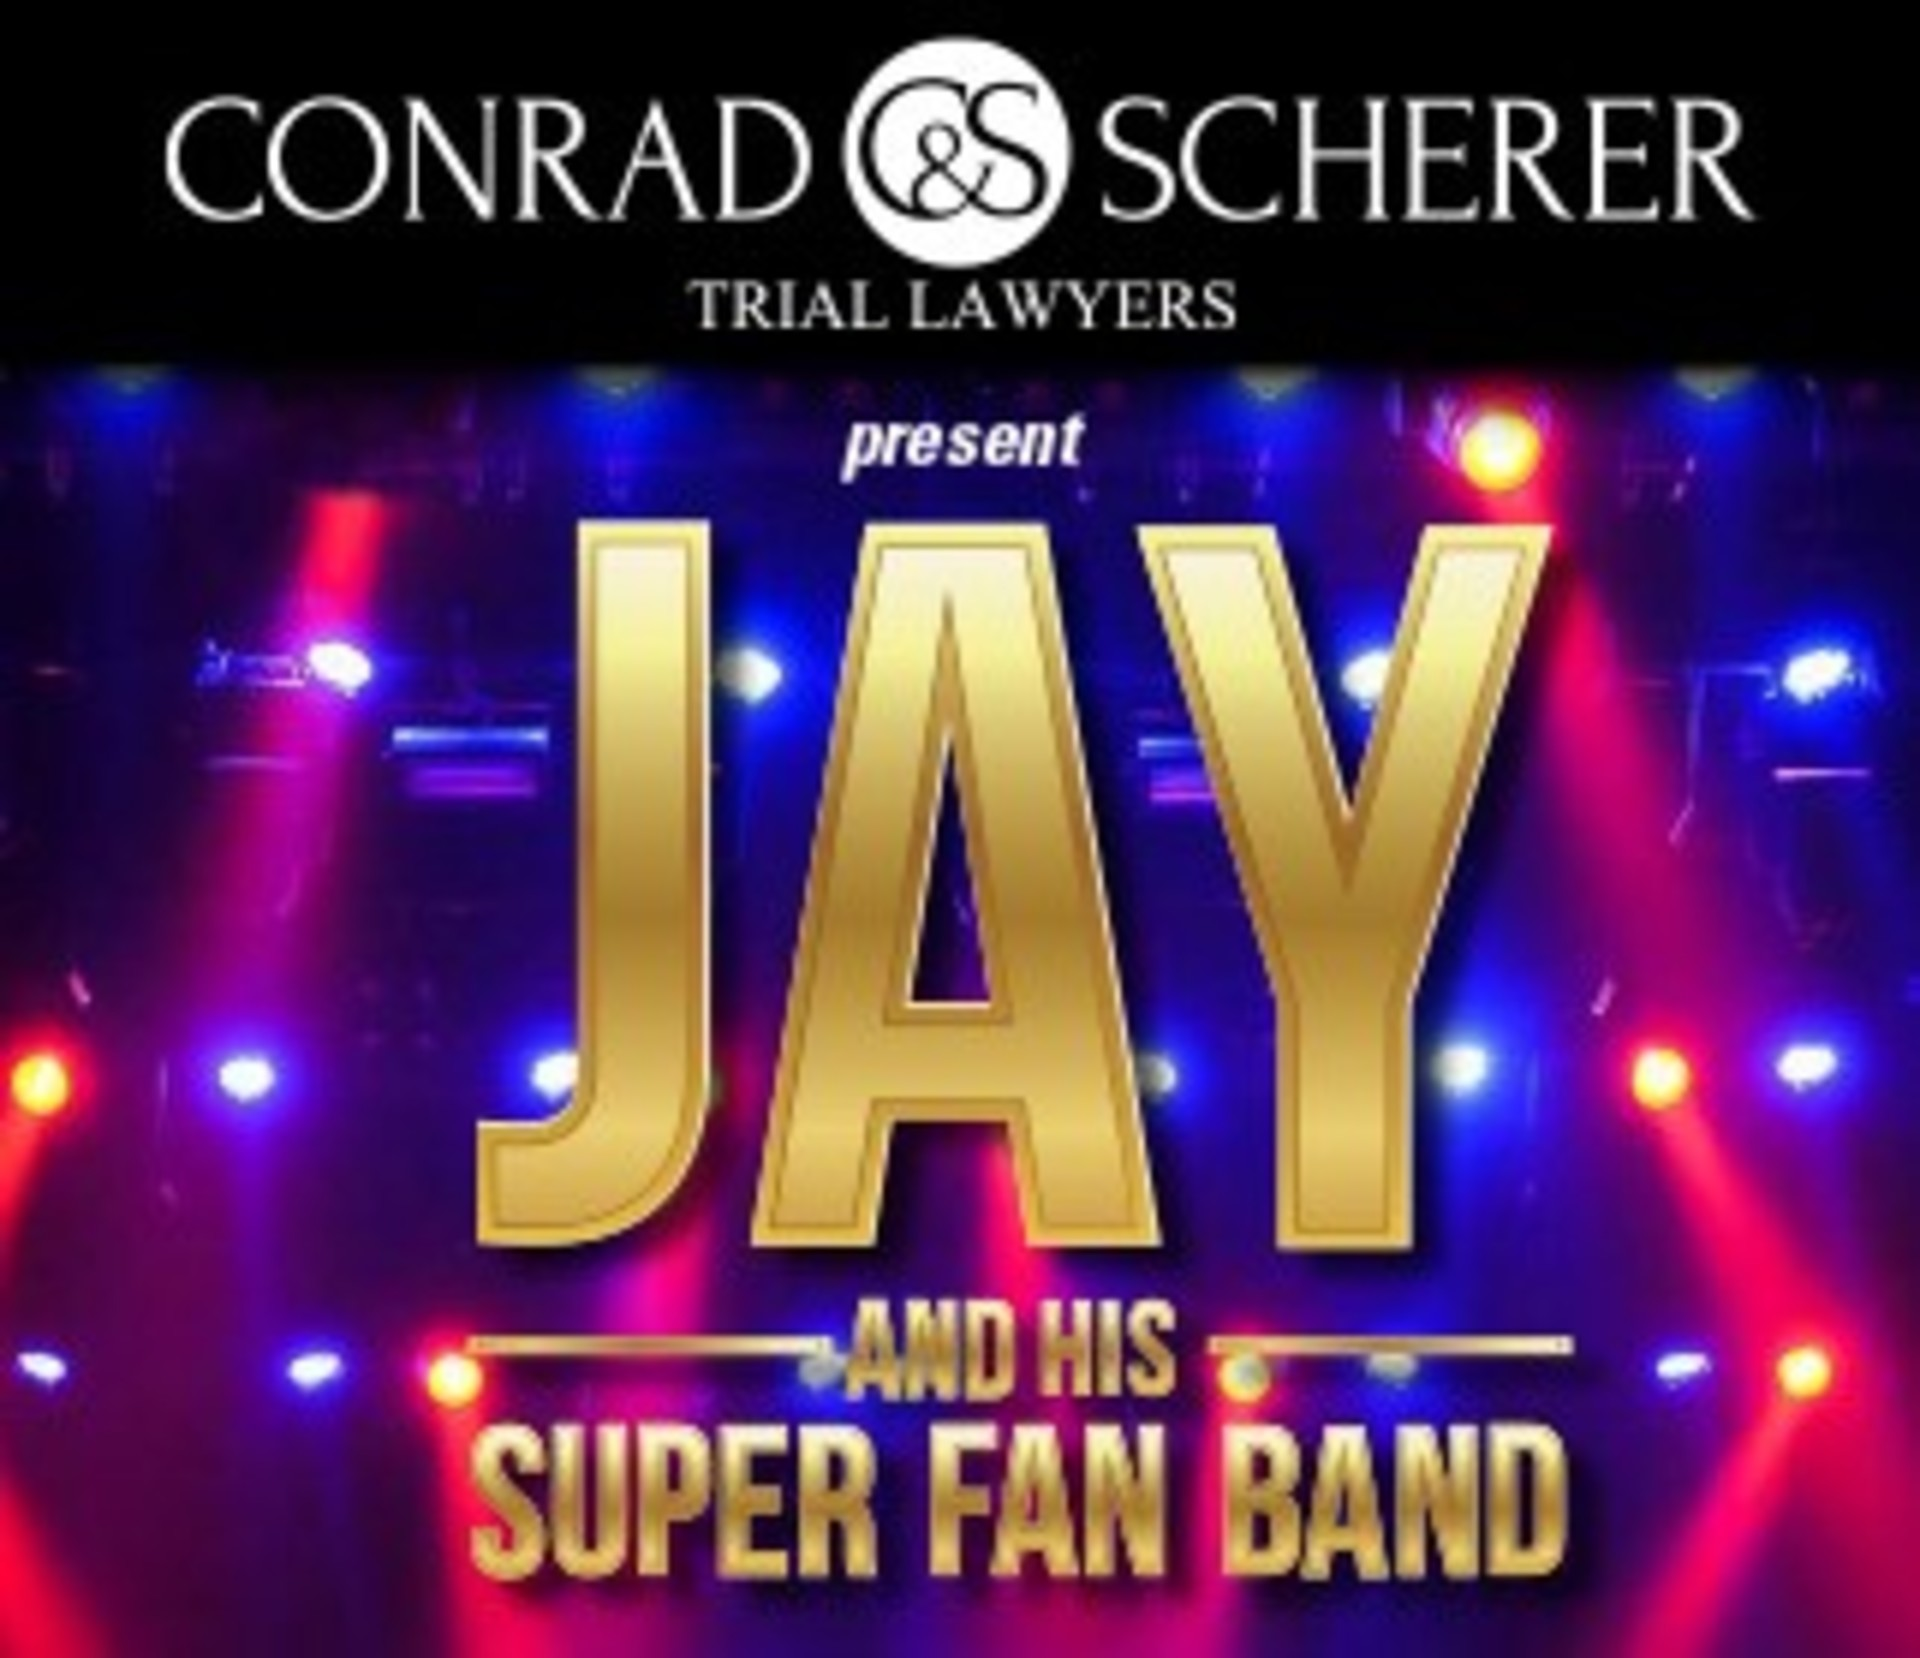 Conrad & Scherer Presents JAY and His Super Fan Band benefitting Marjorie Stoneman Douglas Marching Band